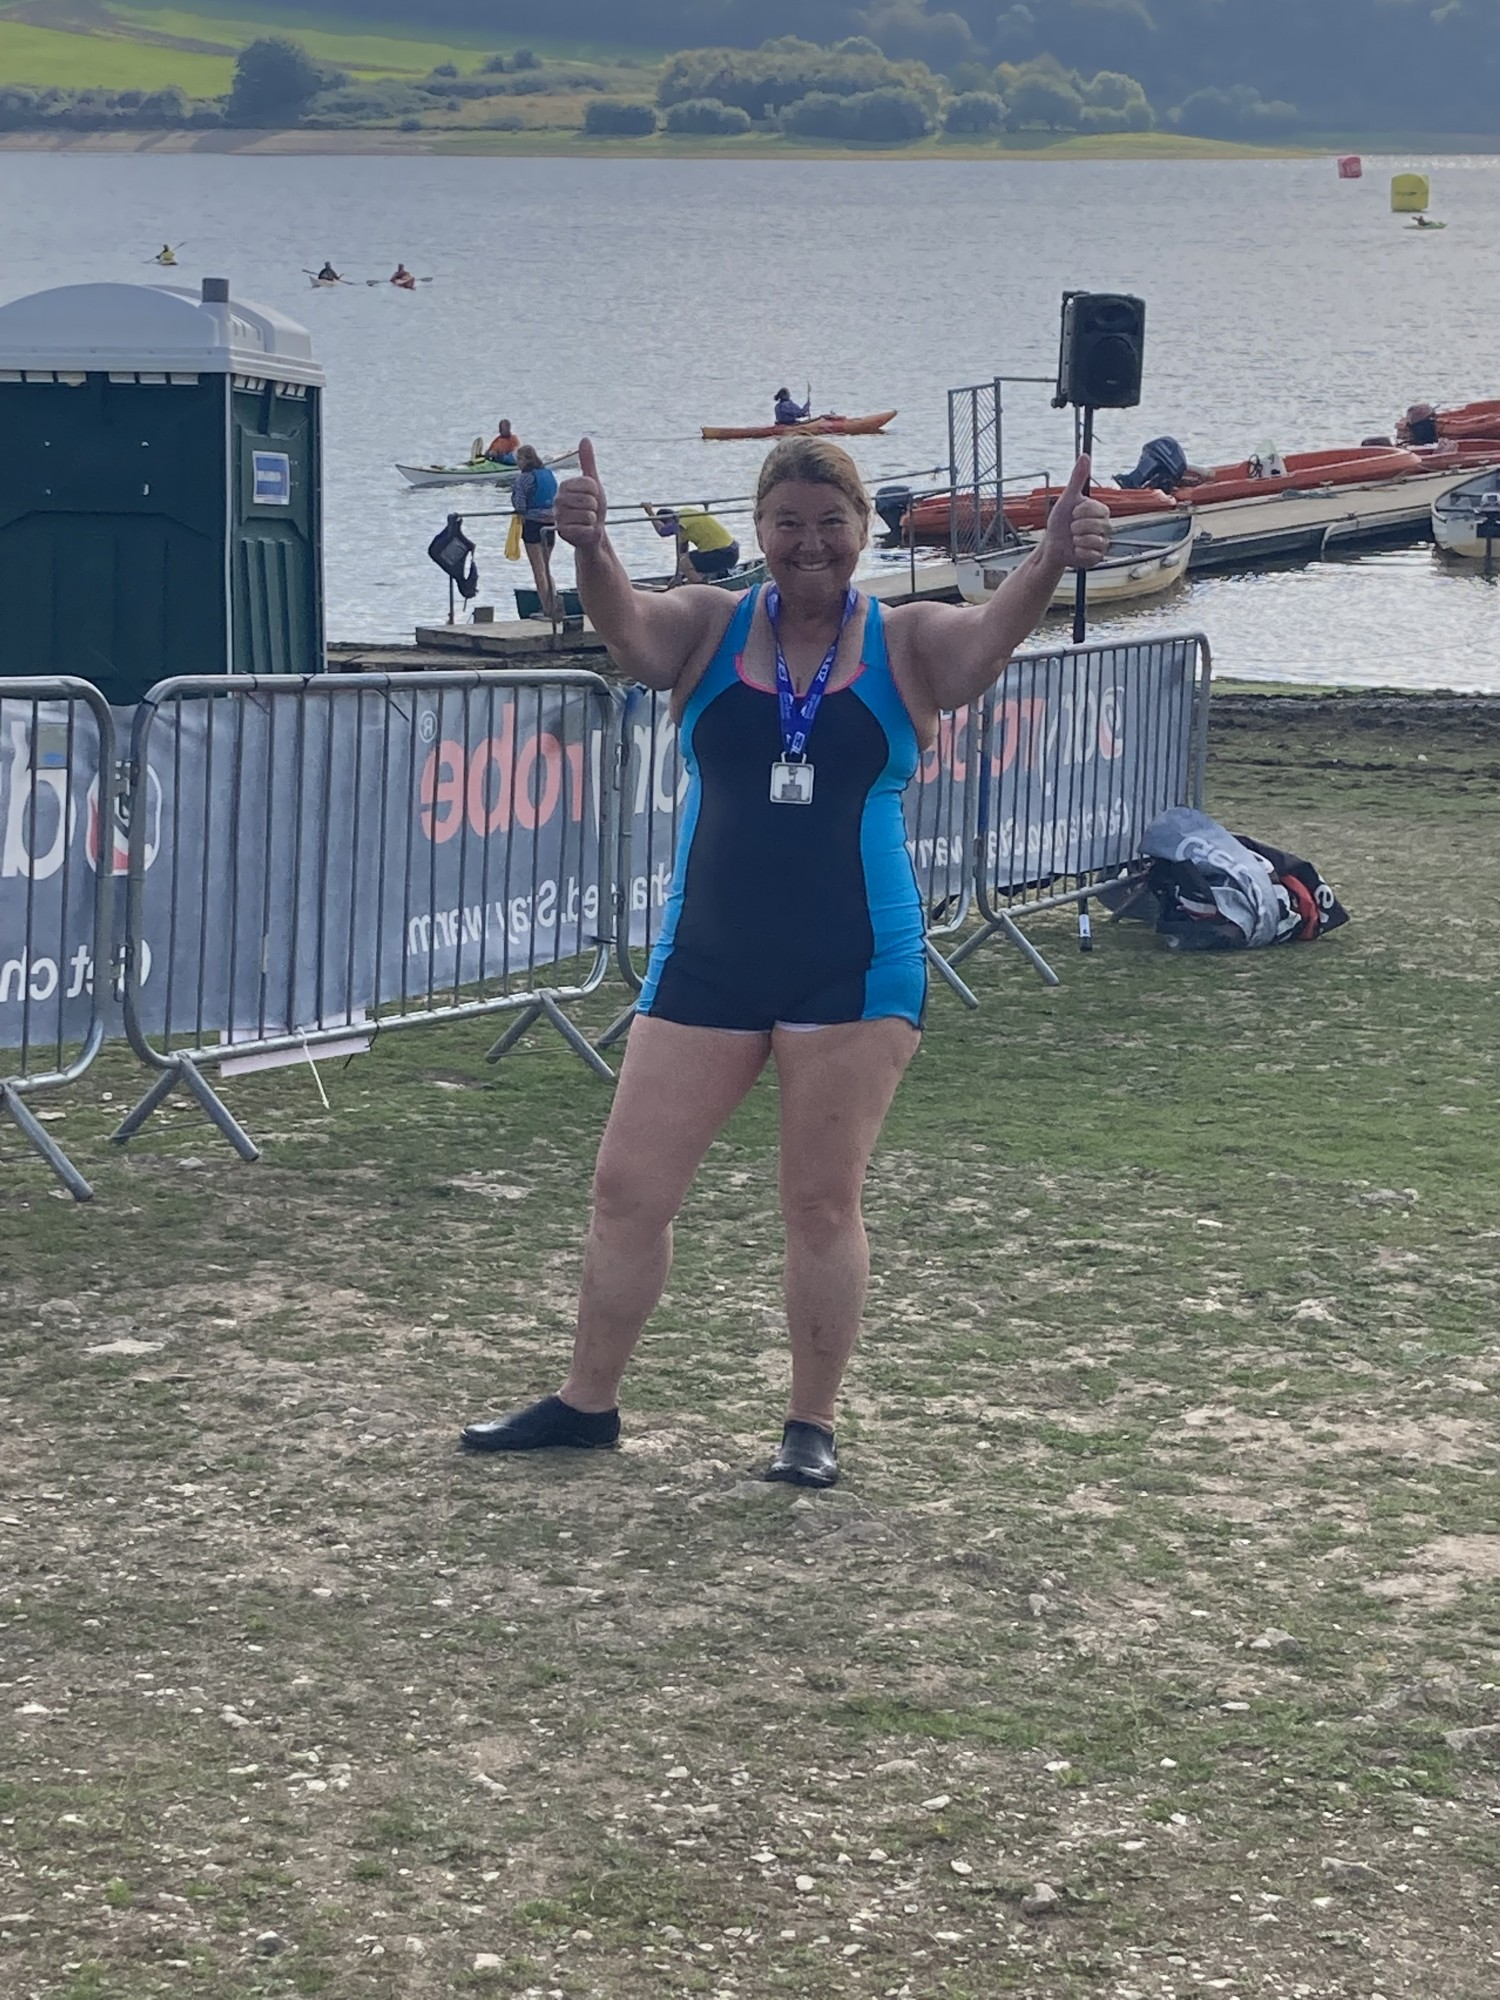 Caroline completes the Exmoor Open Water Swim for our Charity